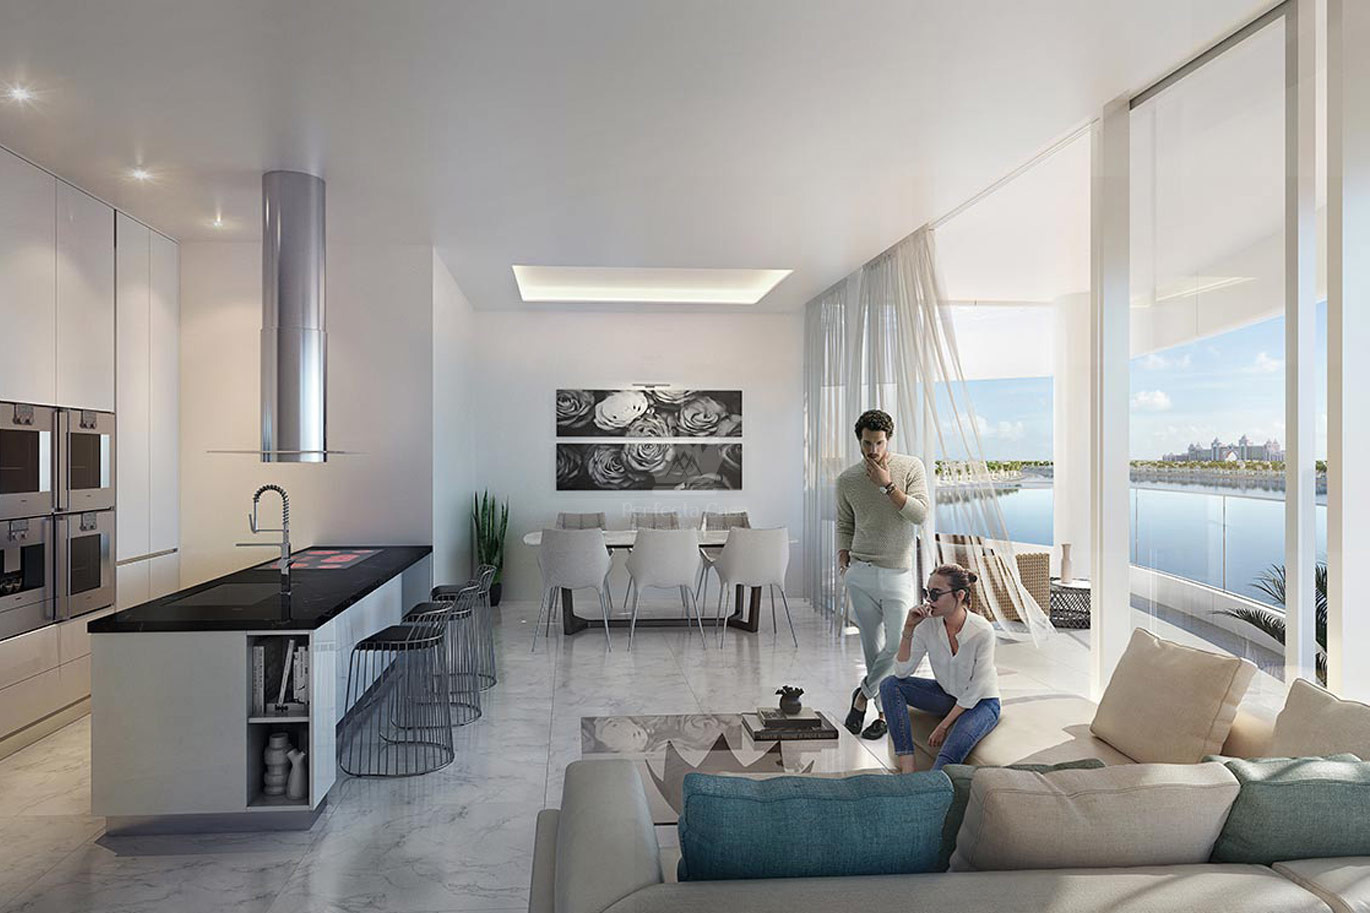 2 Bedroom Serviced Apartment at Palm Jumeirah - Image 5